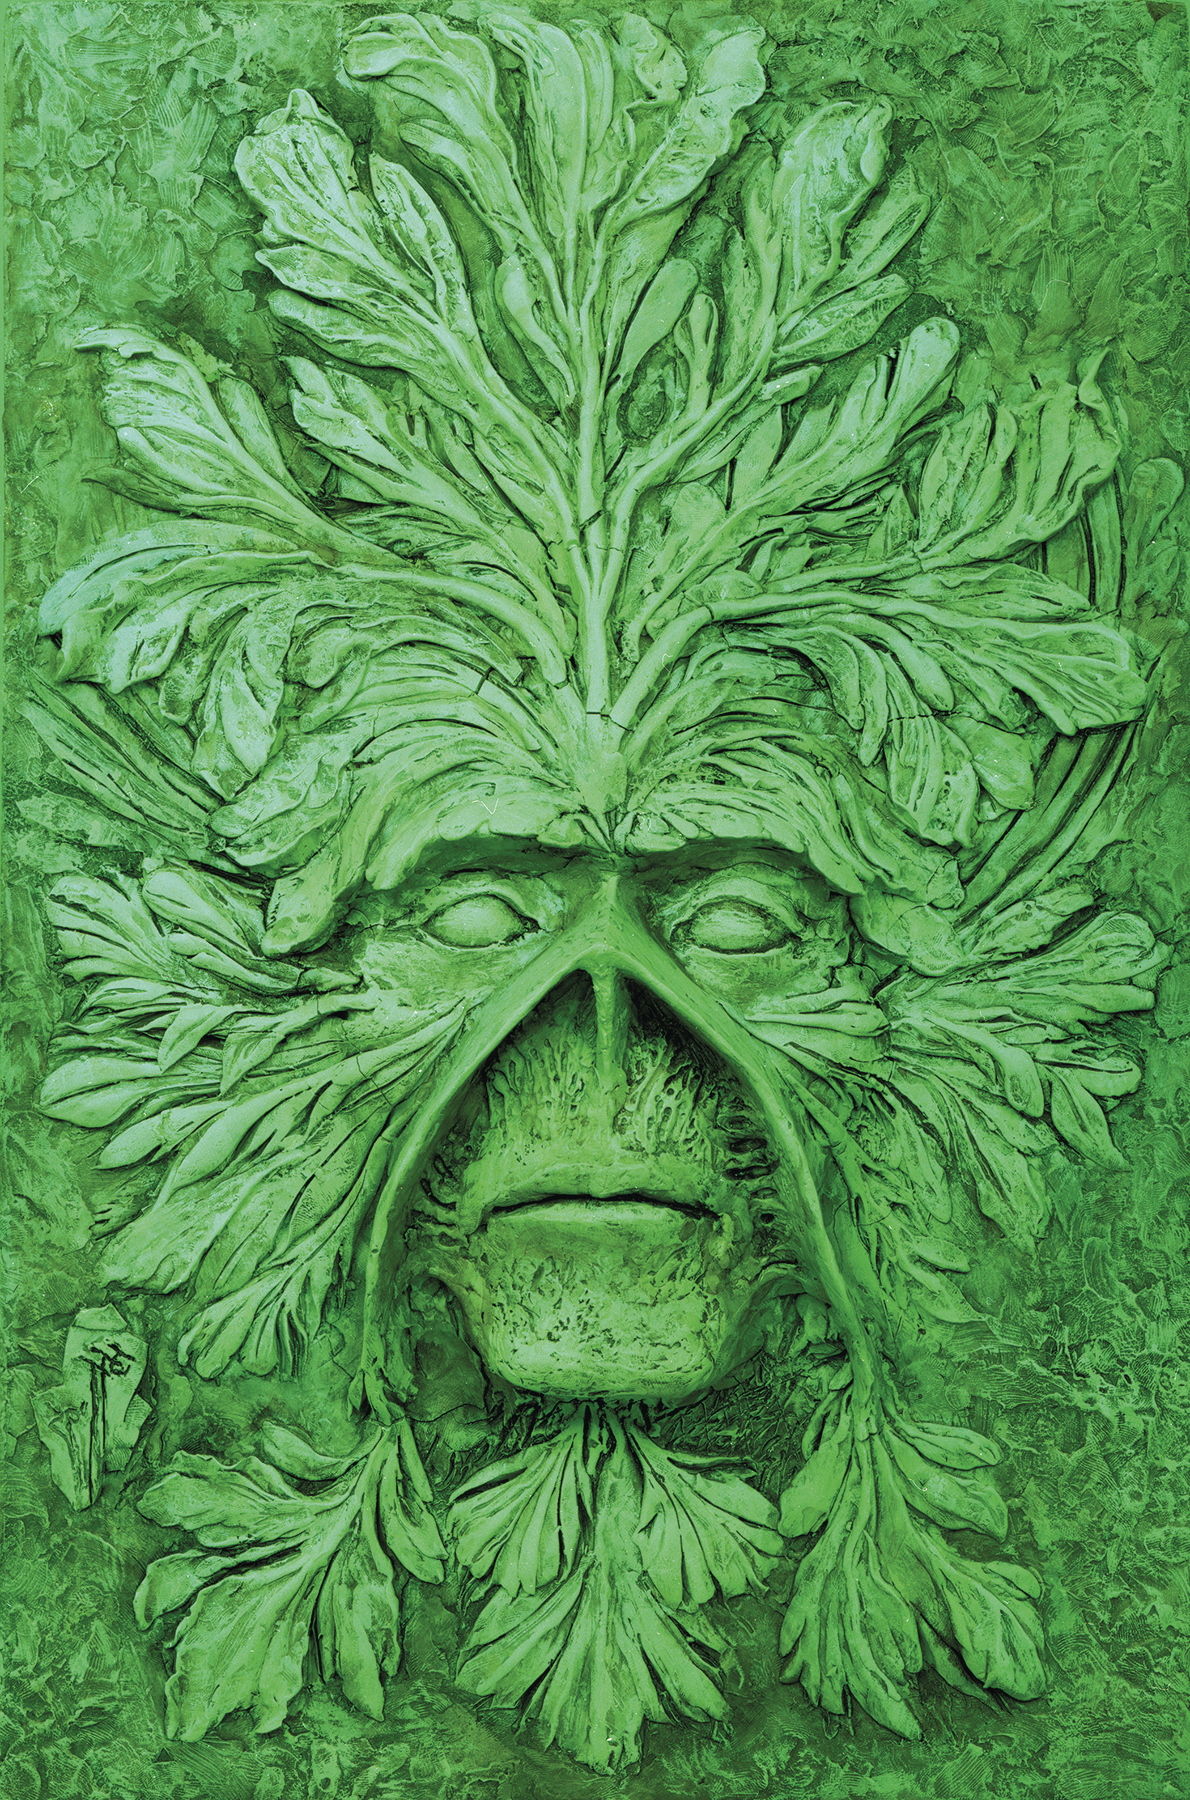 ABSOLUTE SWAMP THING HC VOL 01 BY ALAN MOORE (O/A)